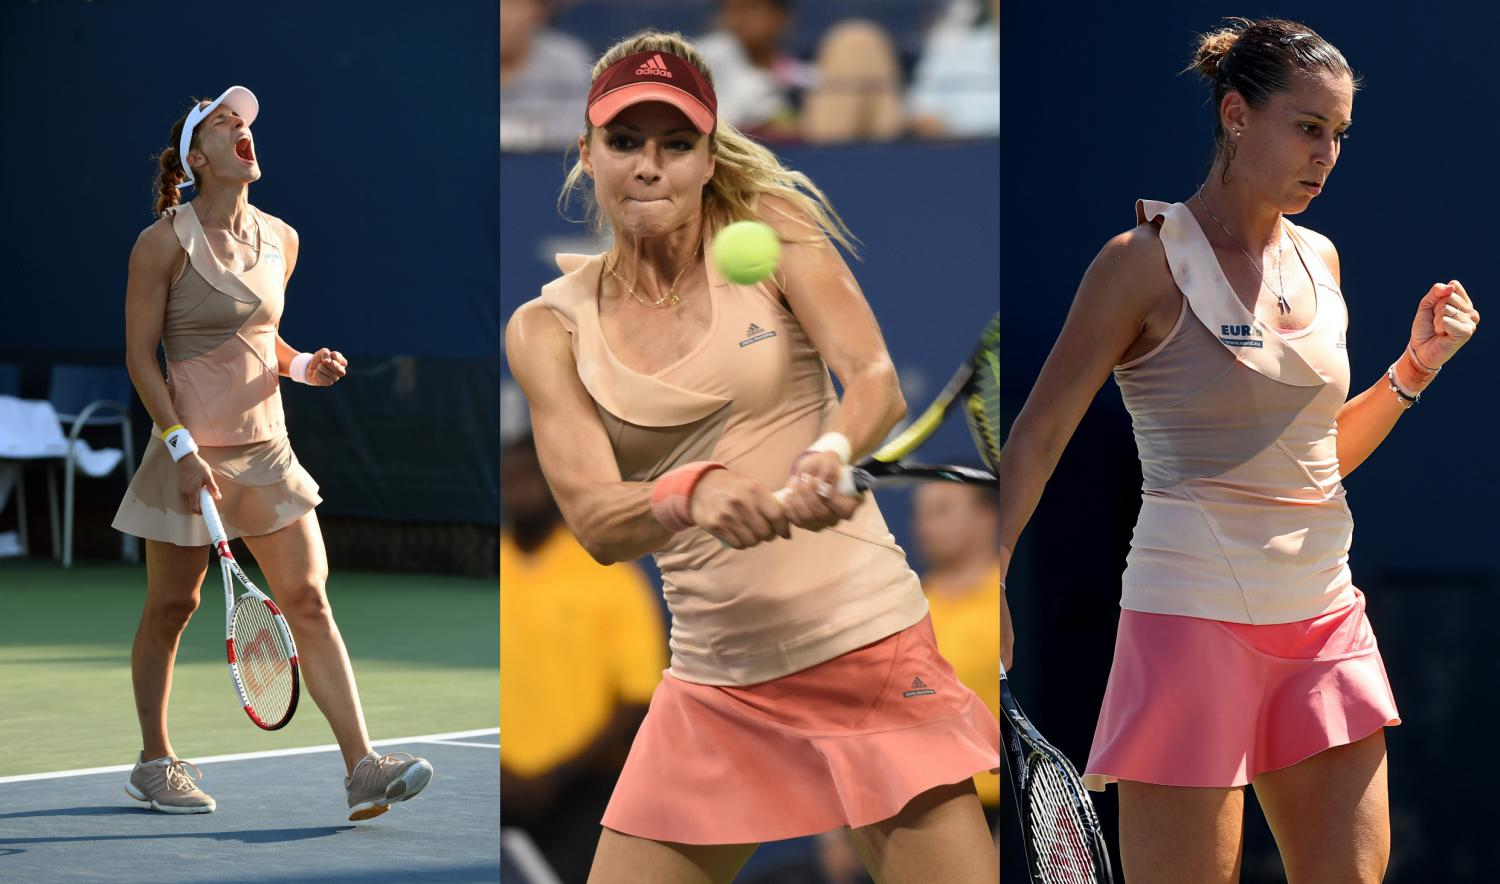 The Stella McCartney ruffles on these three ladies were one of our least favorite looks of the tournament.